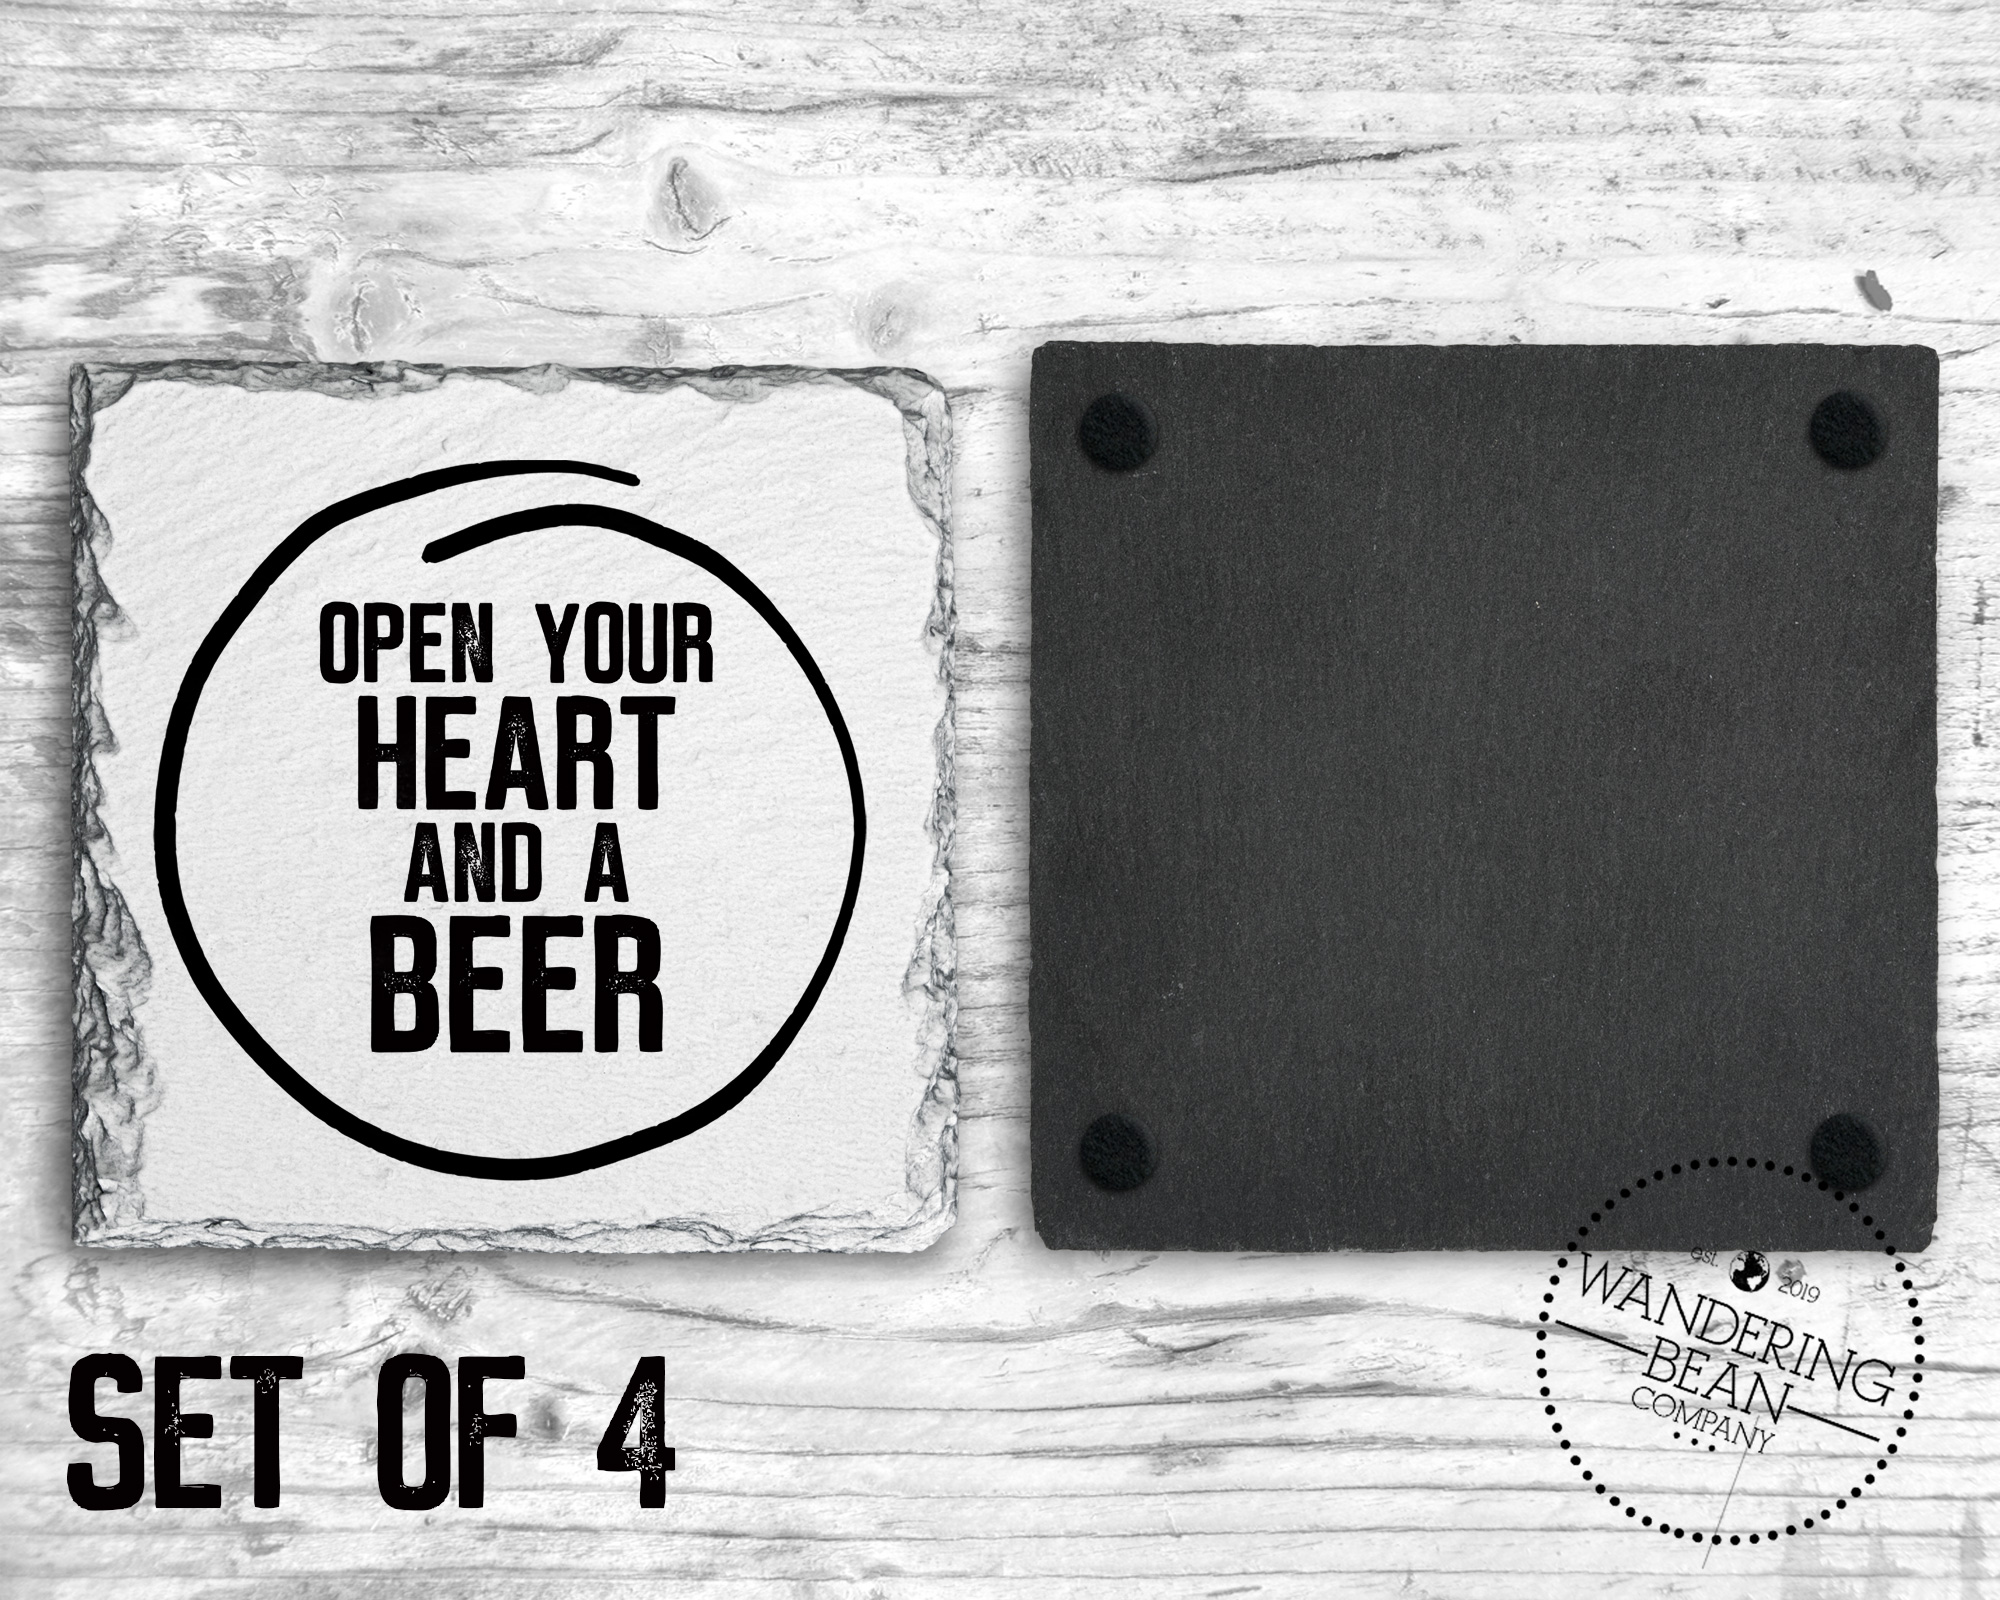 open-your-heart-and-a-beer--square-slate